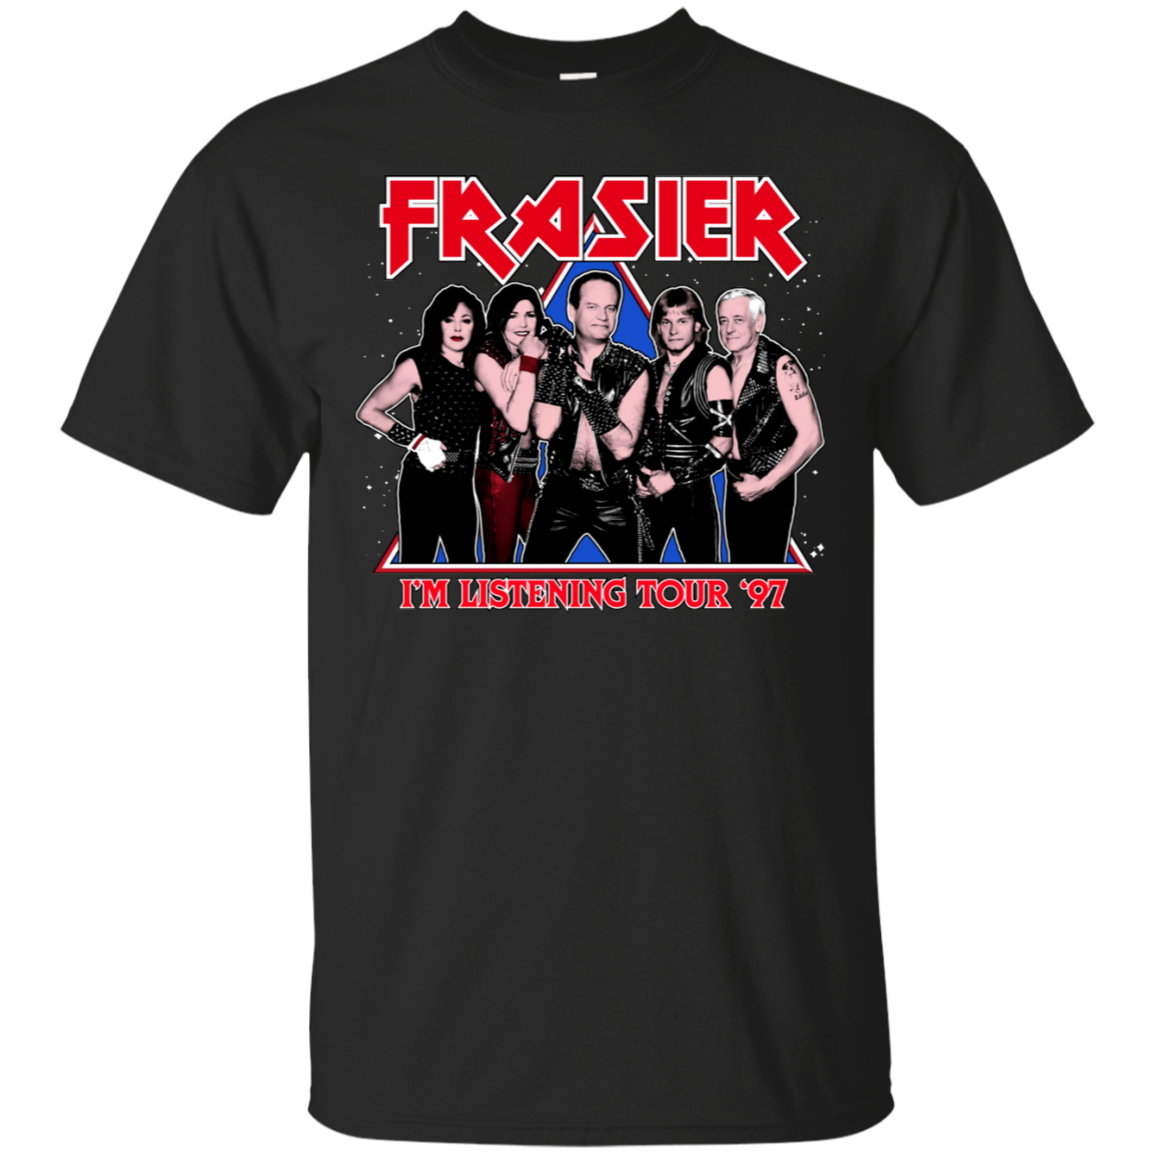 Frasier_aw Frasier I'm Listening Tour 97 T Shirt Black Cotton Men T-Shirt M-3XL